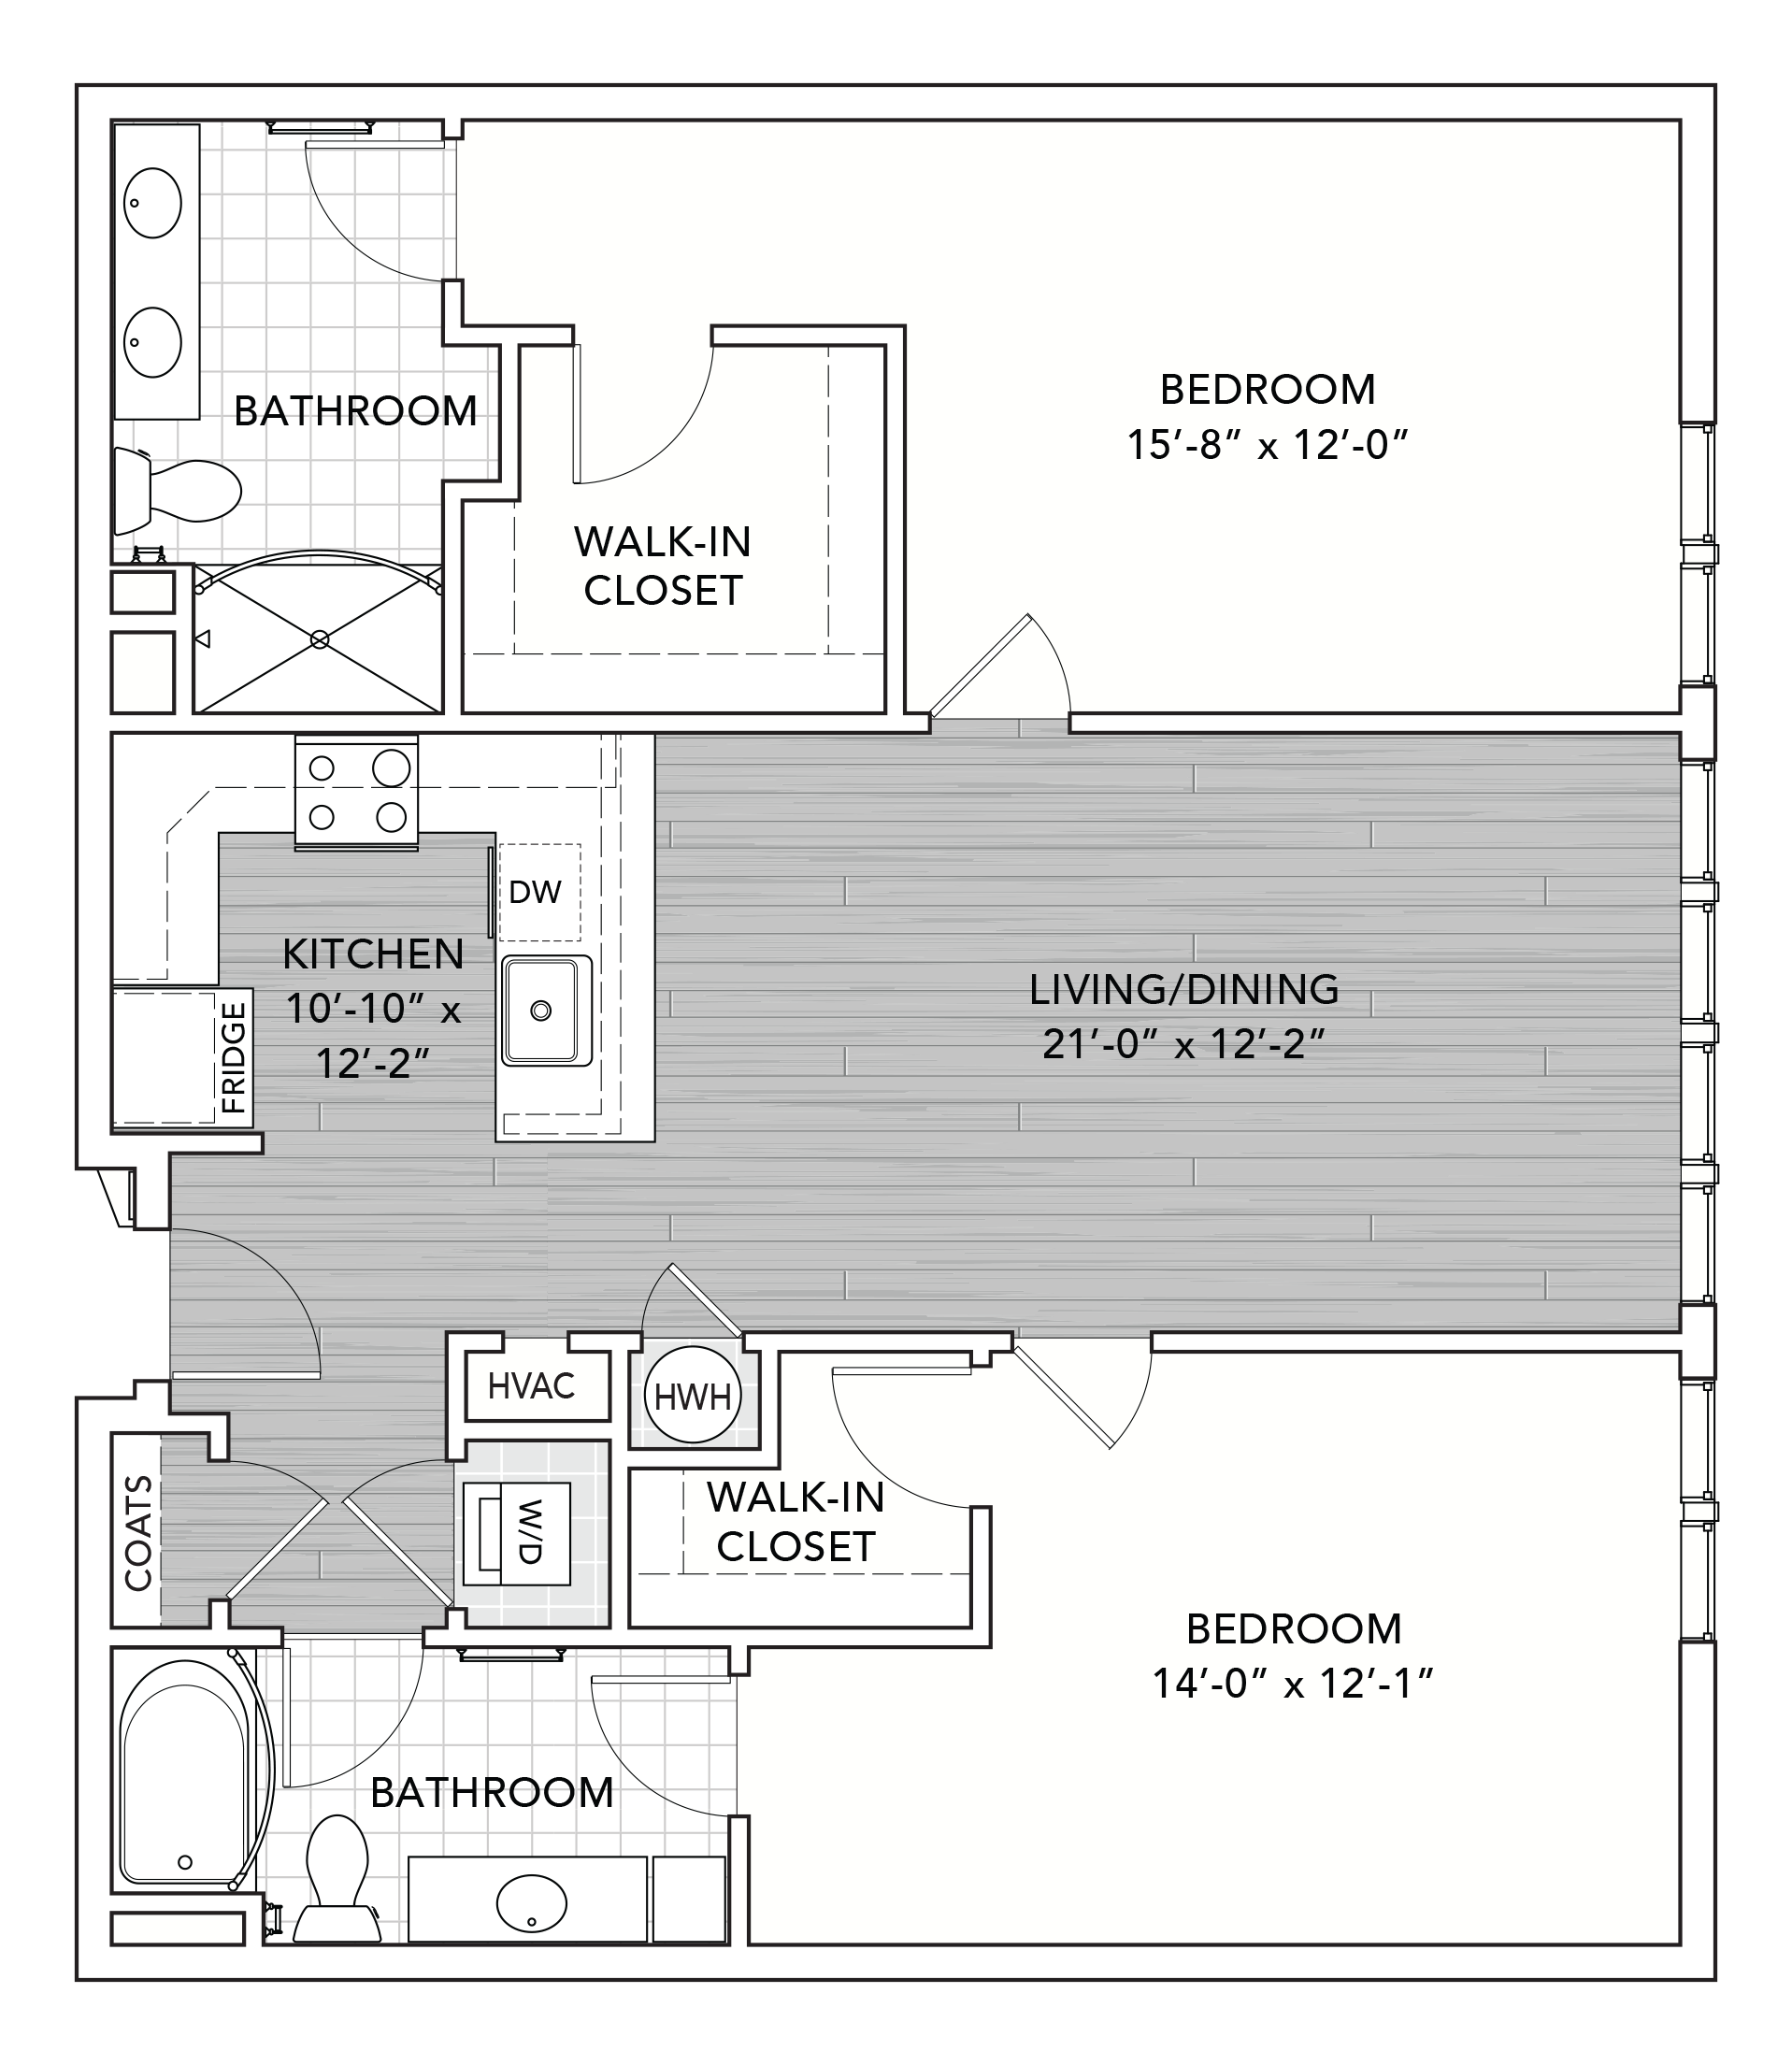 P0655013 parksquare b5 1254 2 floorplan